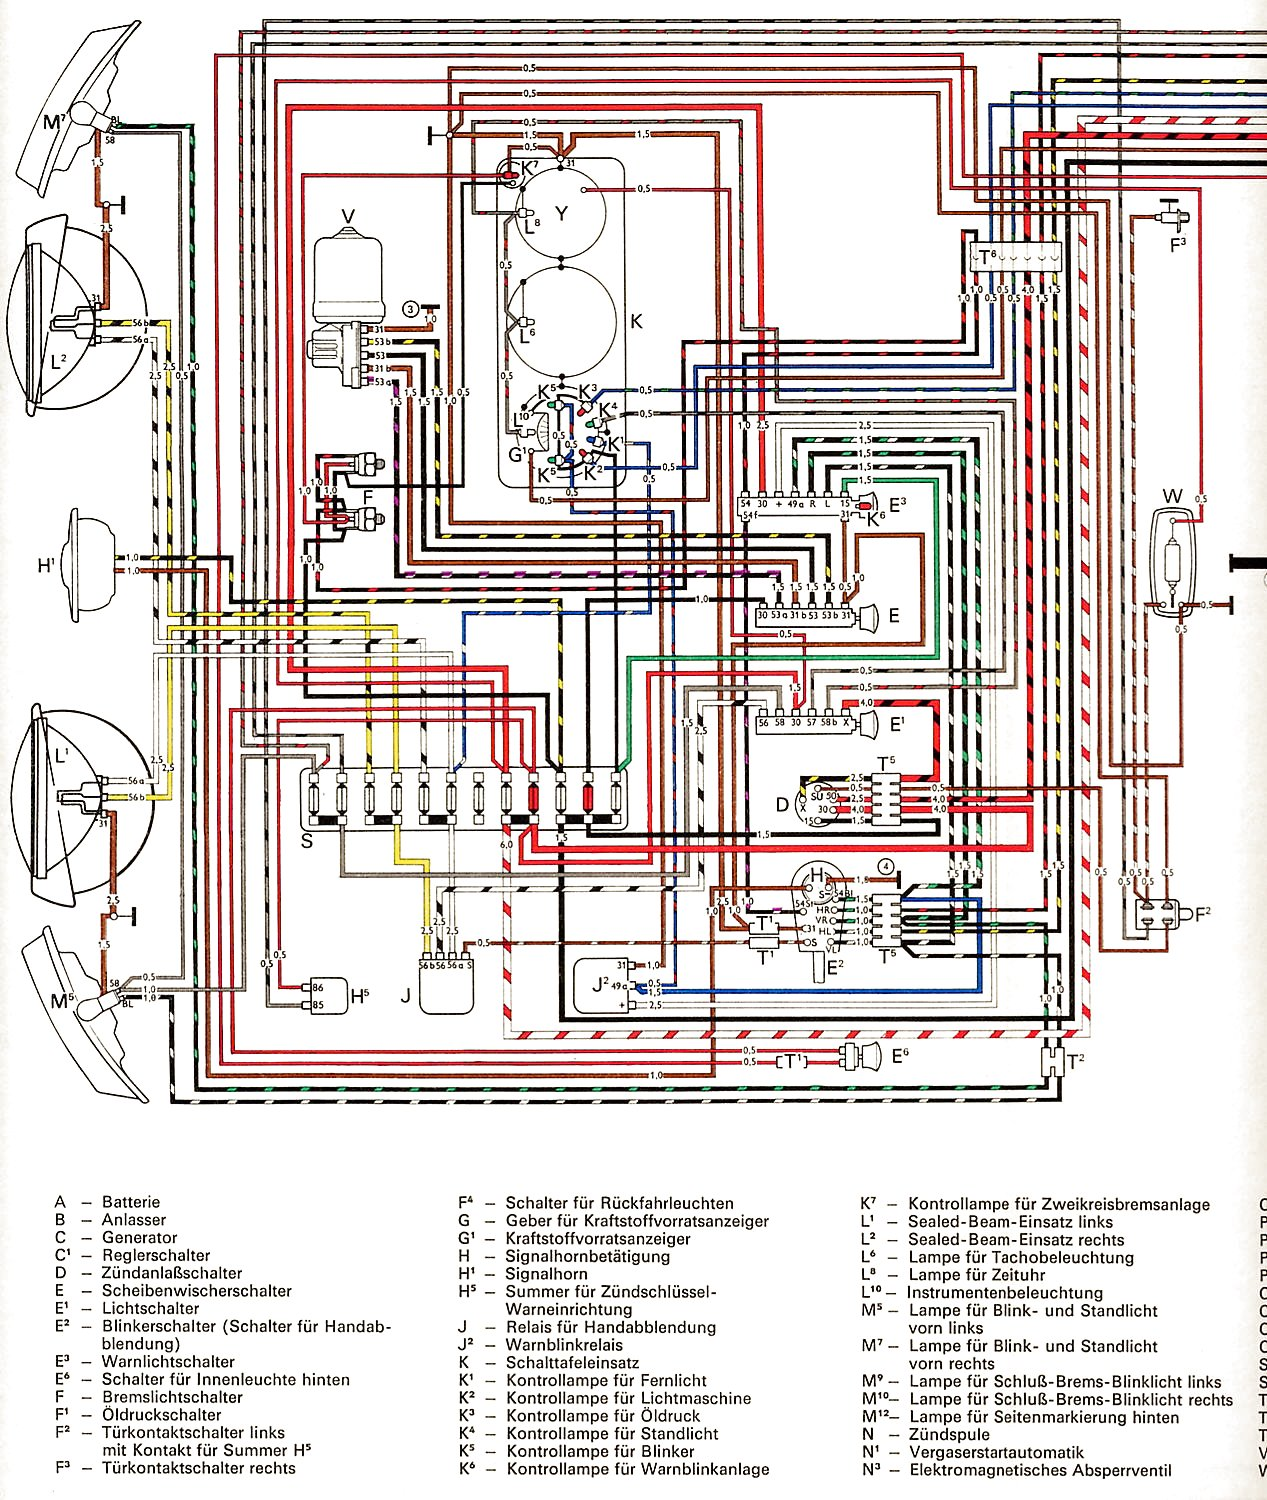 2000 vw beetle wiring diagram detailed schematic diagrams rh 4rmotorsports com 2005 VW Jetta Wiring Diagram 2005 VW Jetta Wiring Diagram